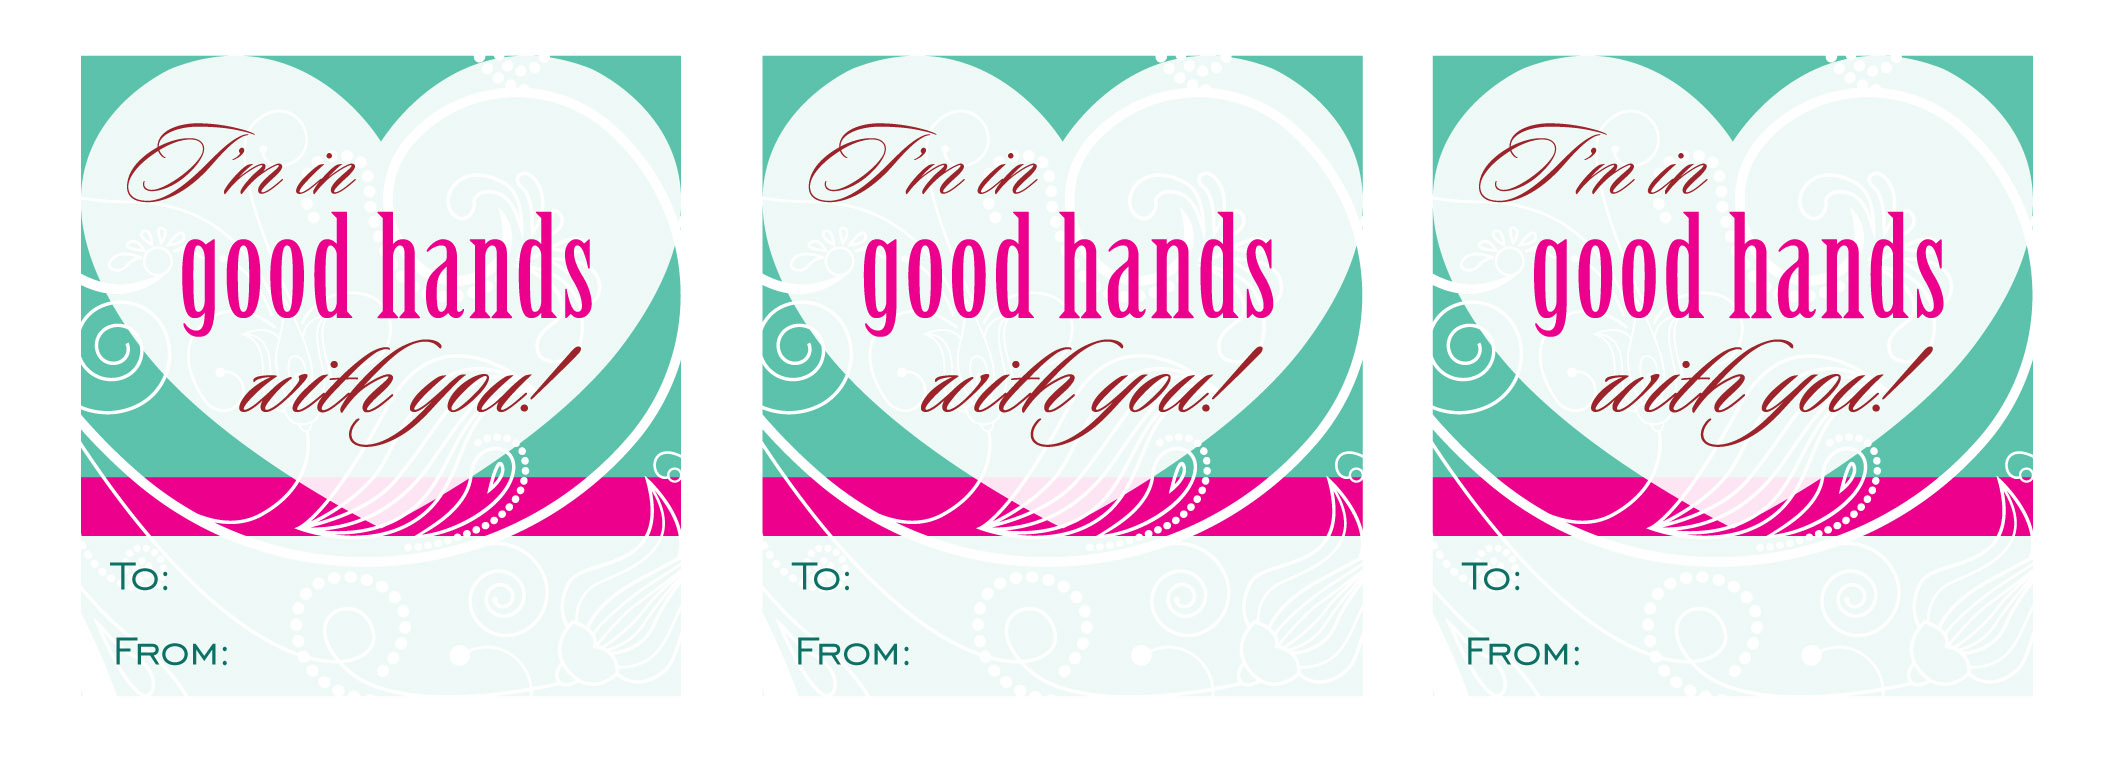 image regarding Teacher Valentine Printable named Inside Wonderful Fingers\u201d Printable Instructor/Caregiver Valentine Craft